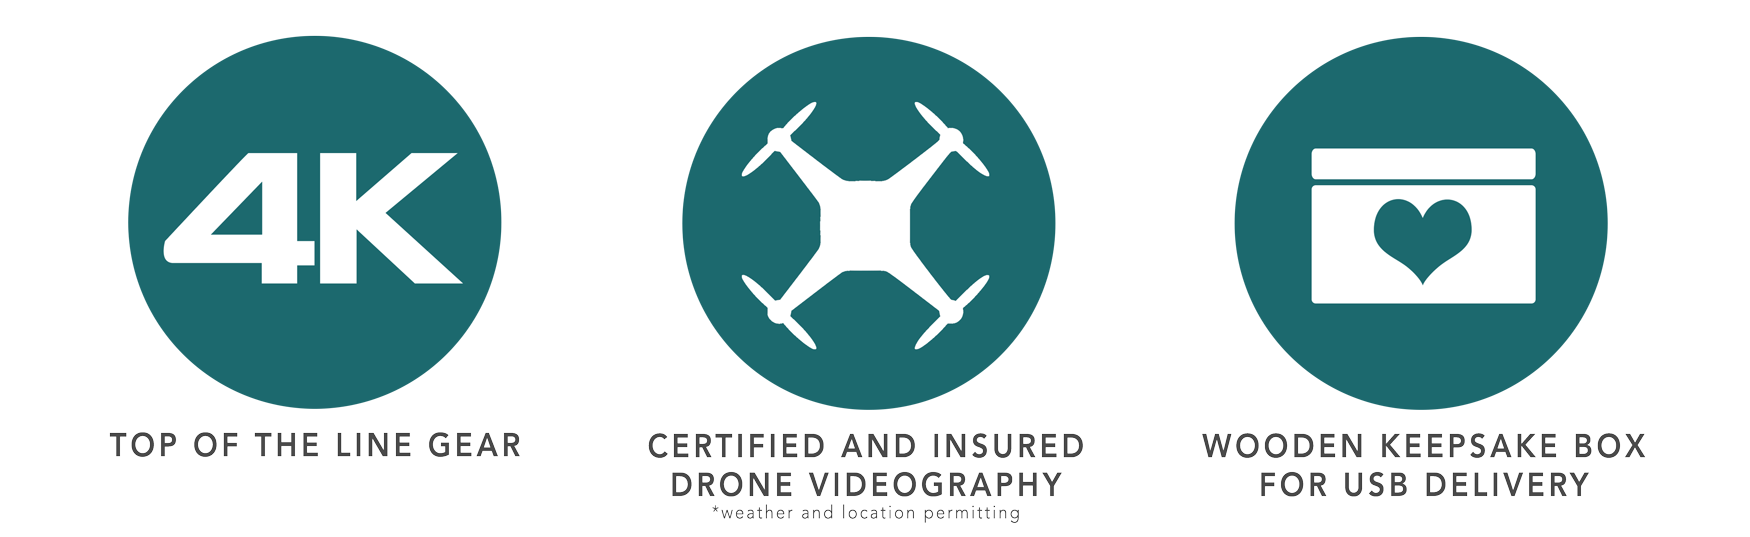 top of the line 4k gear toronto videography certified and insured drone arial videography